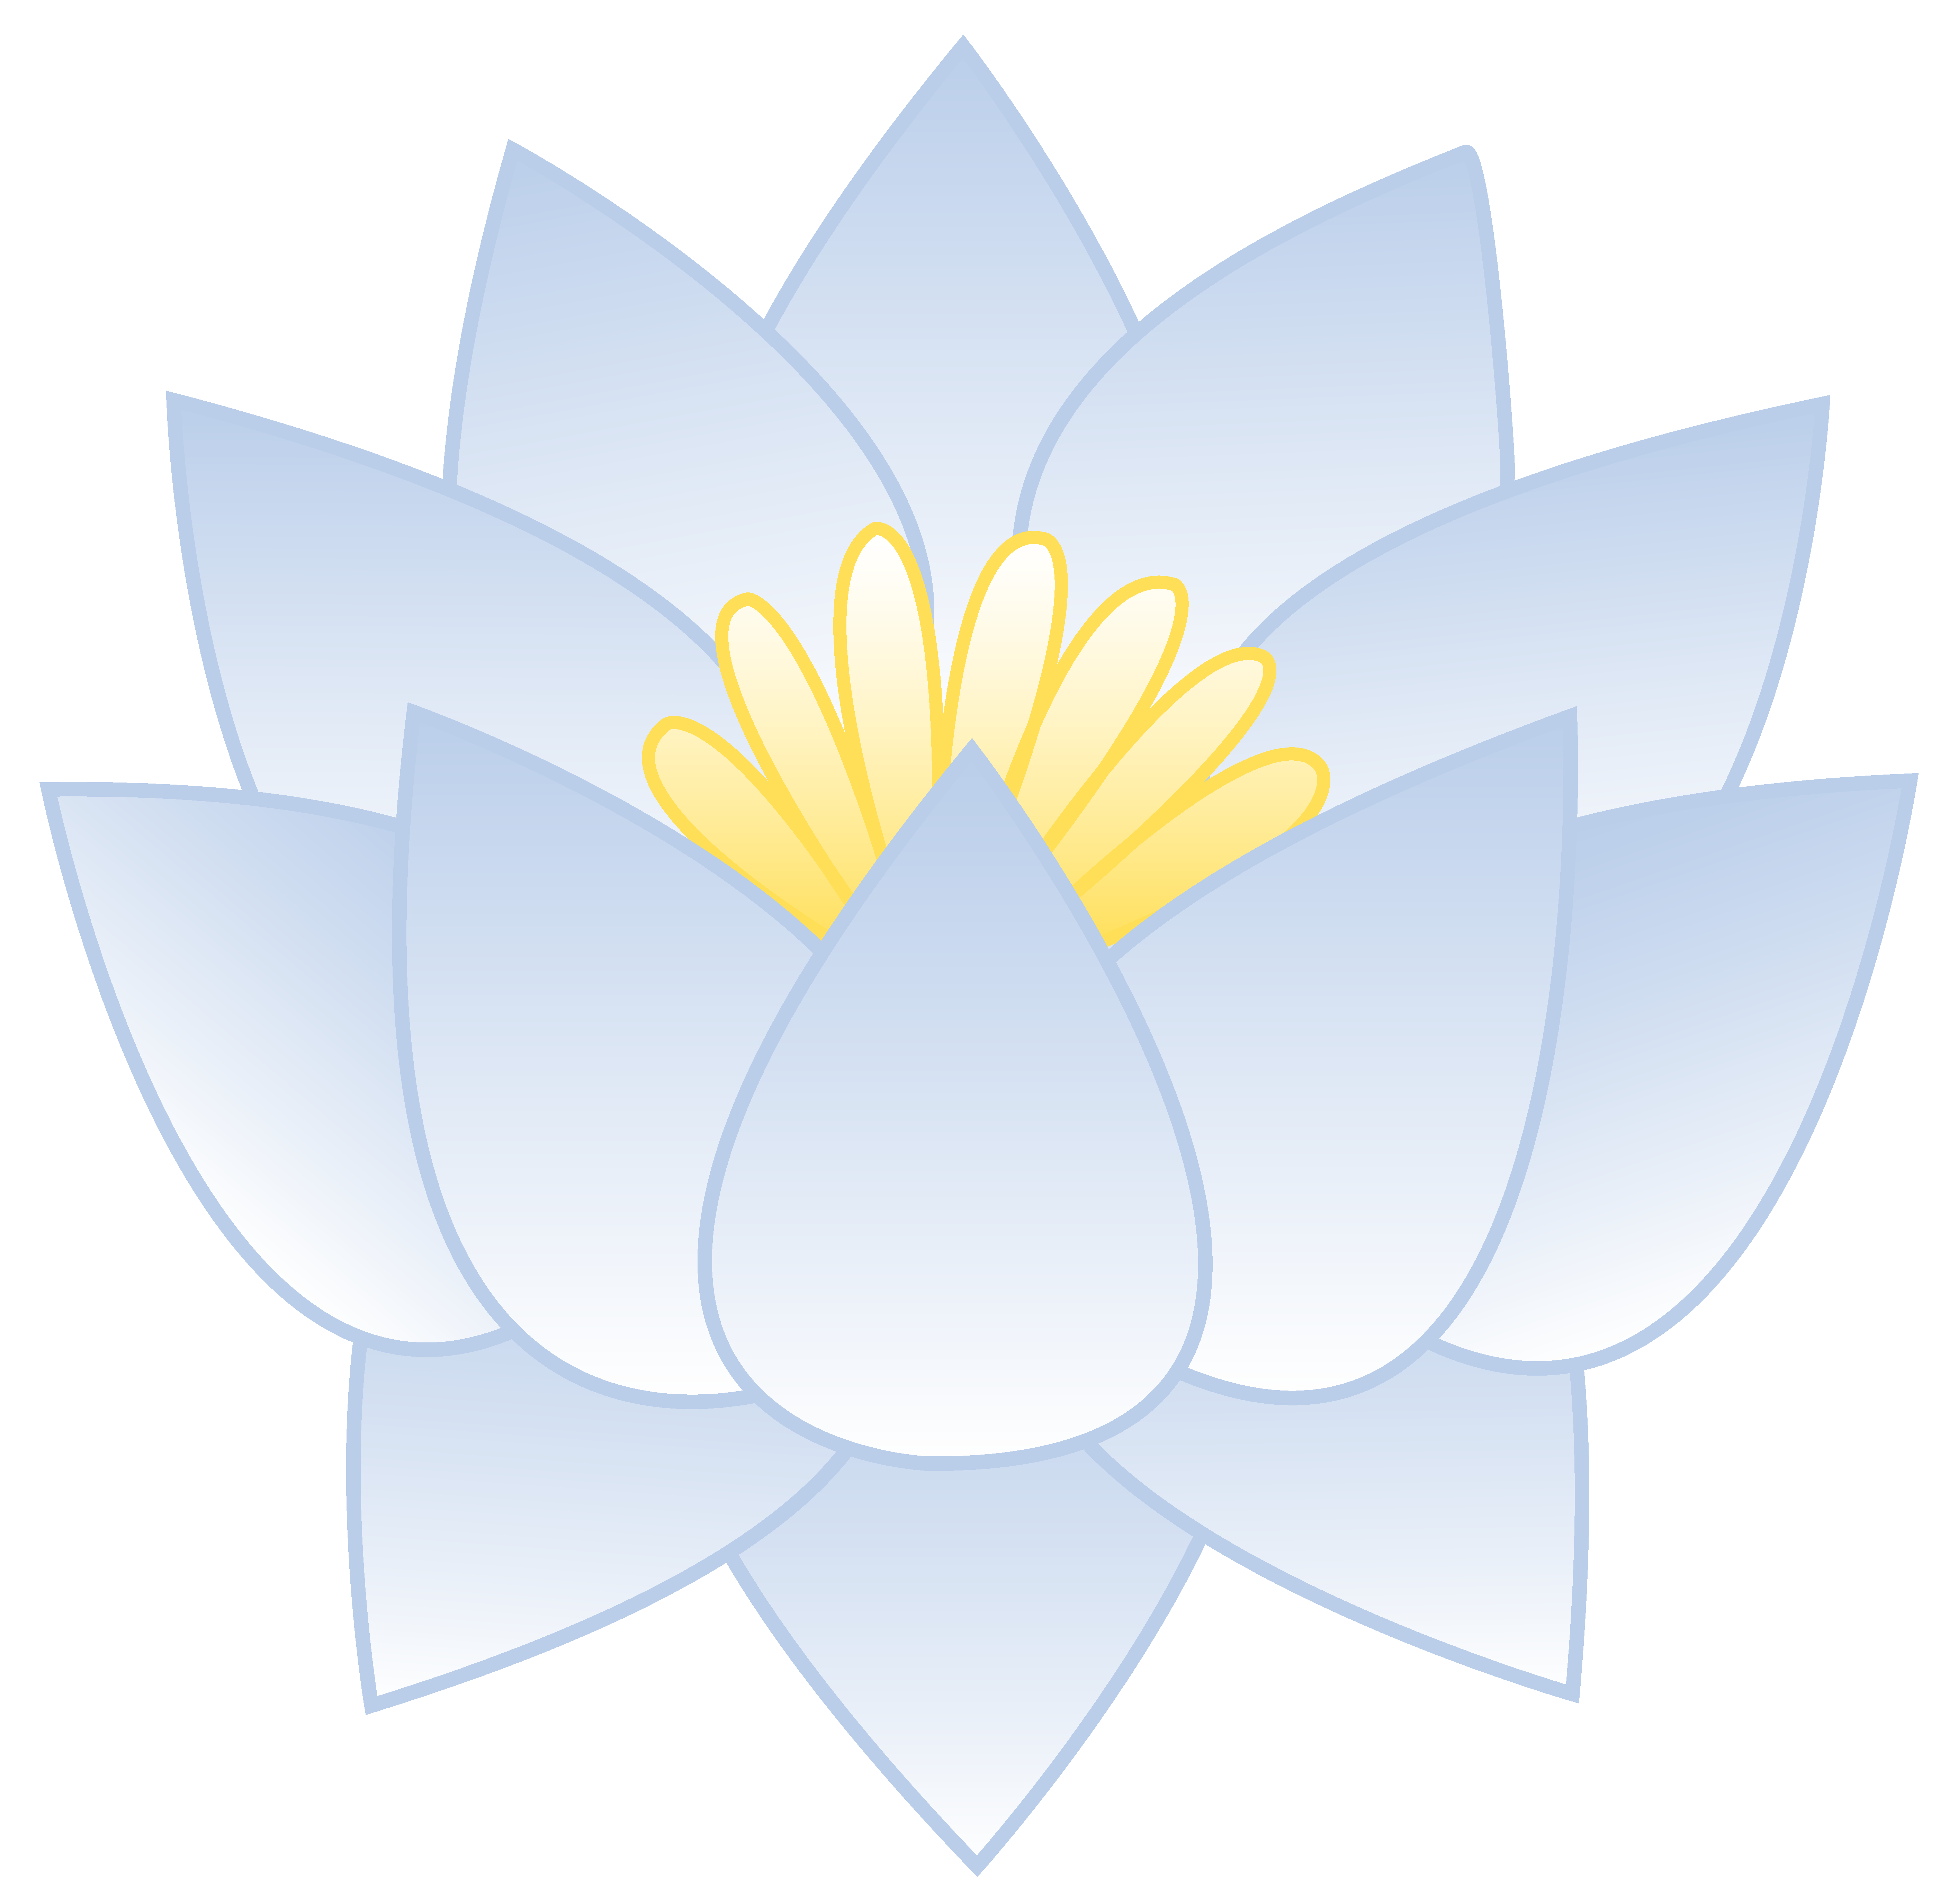 Thai flower clipart clipart free download Lotus Flower Silhouette at GetDrawings.com | Free for personal use ... clipart free download